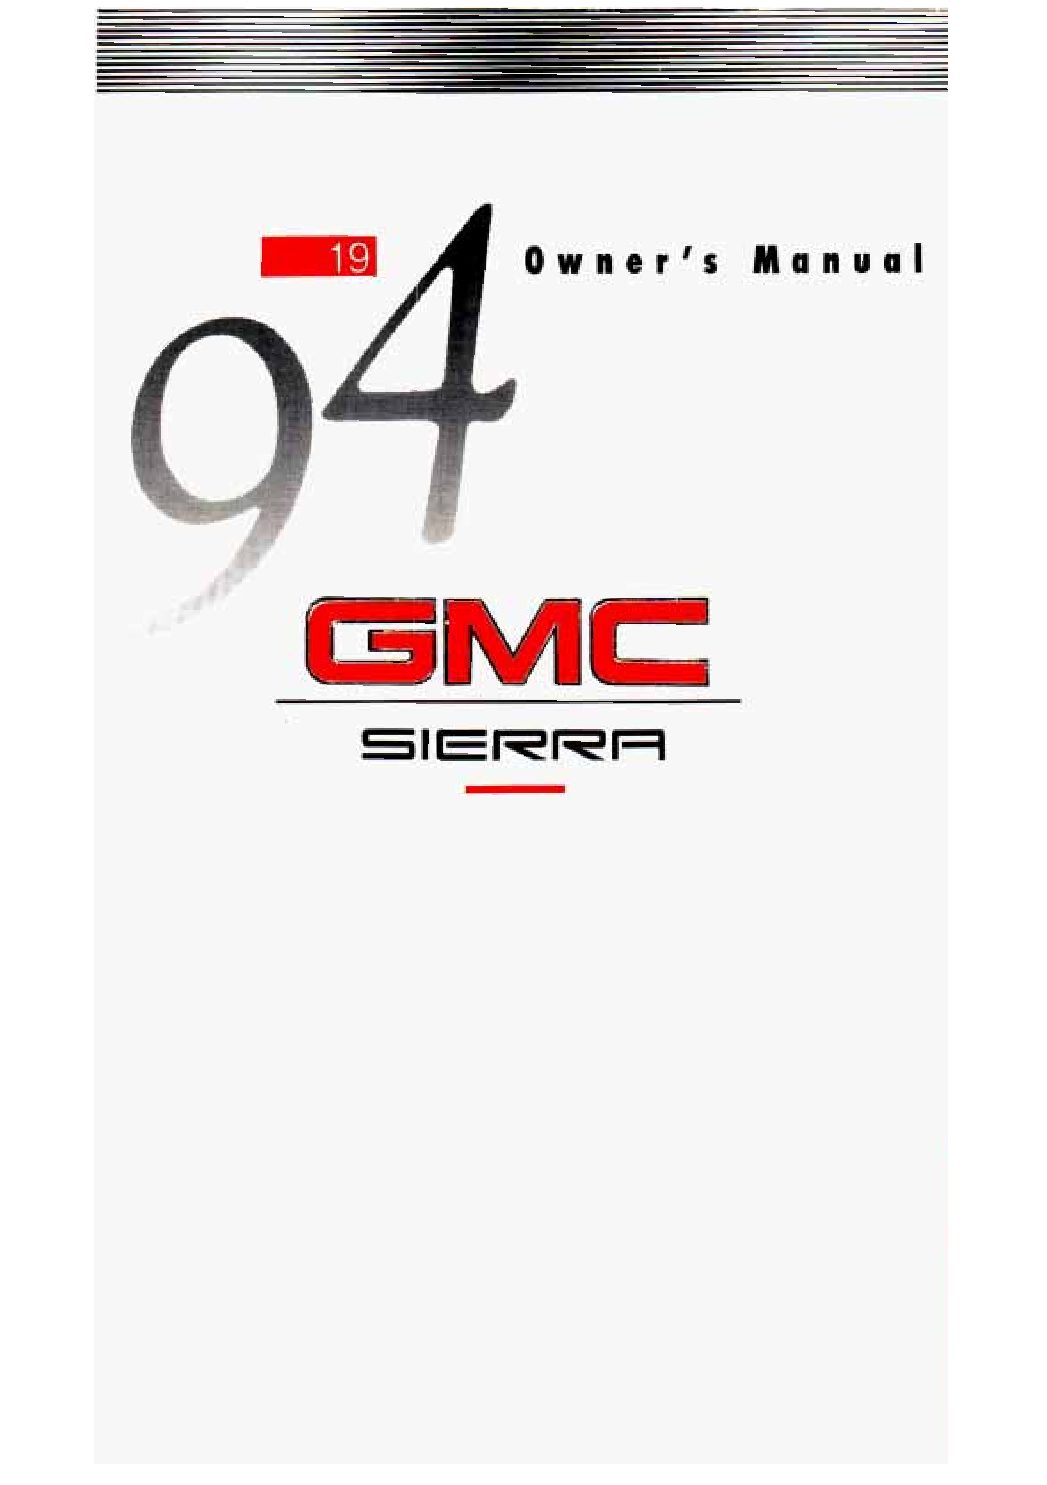 1999 gmc sierra 1500 owners manual sample user manual u2022 rh digiterica co 1999 gmc sierra 1500 owners manual download 2007 GMC Sierra